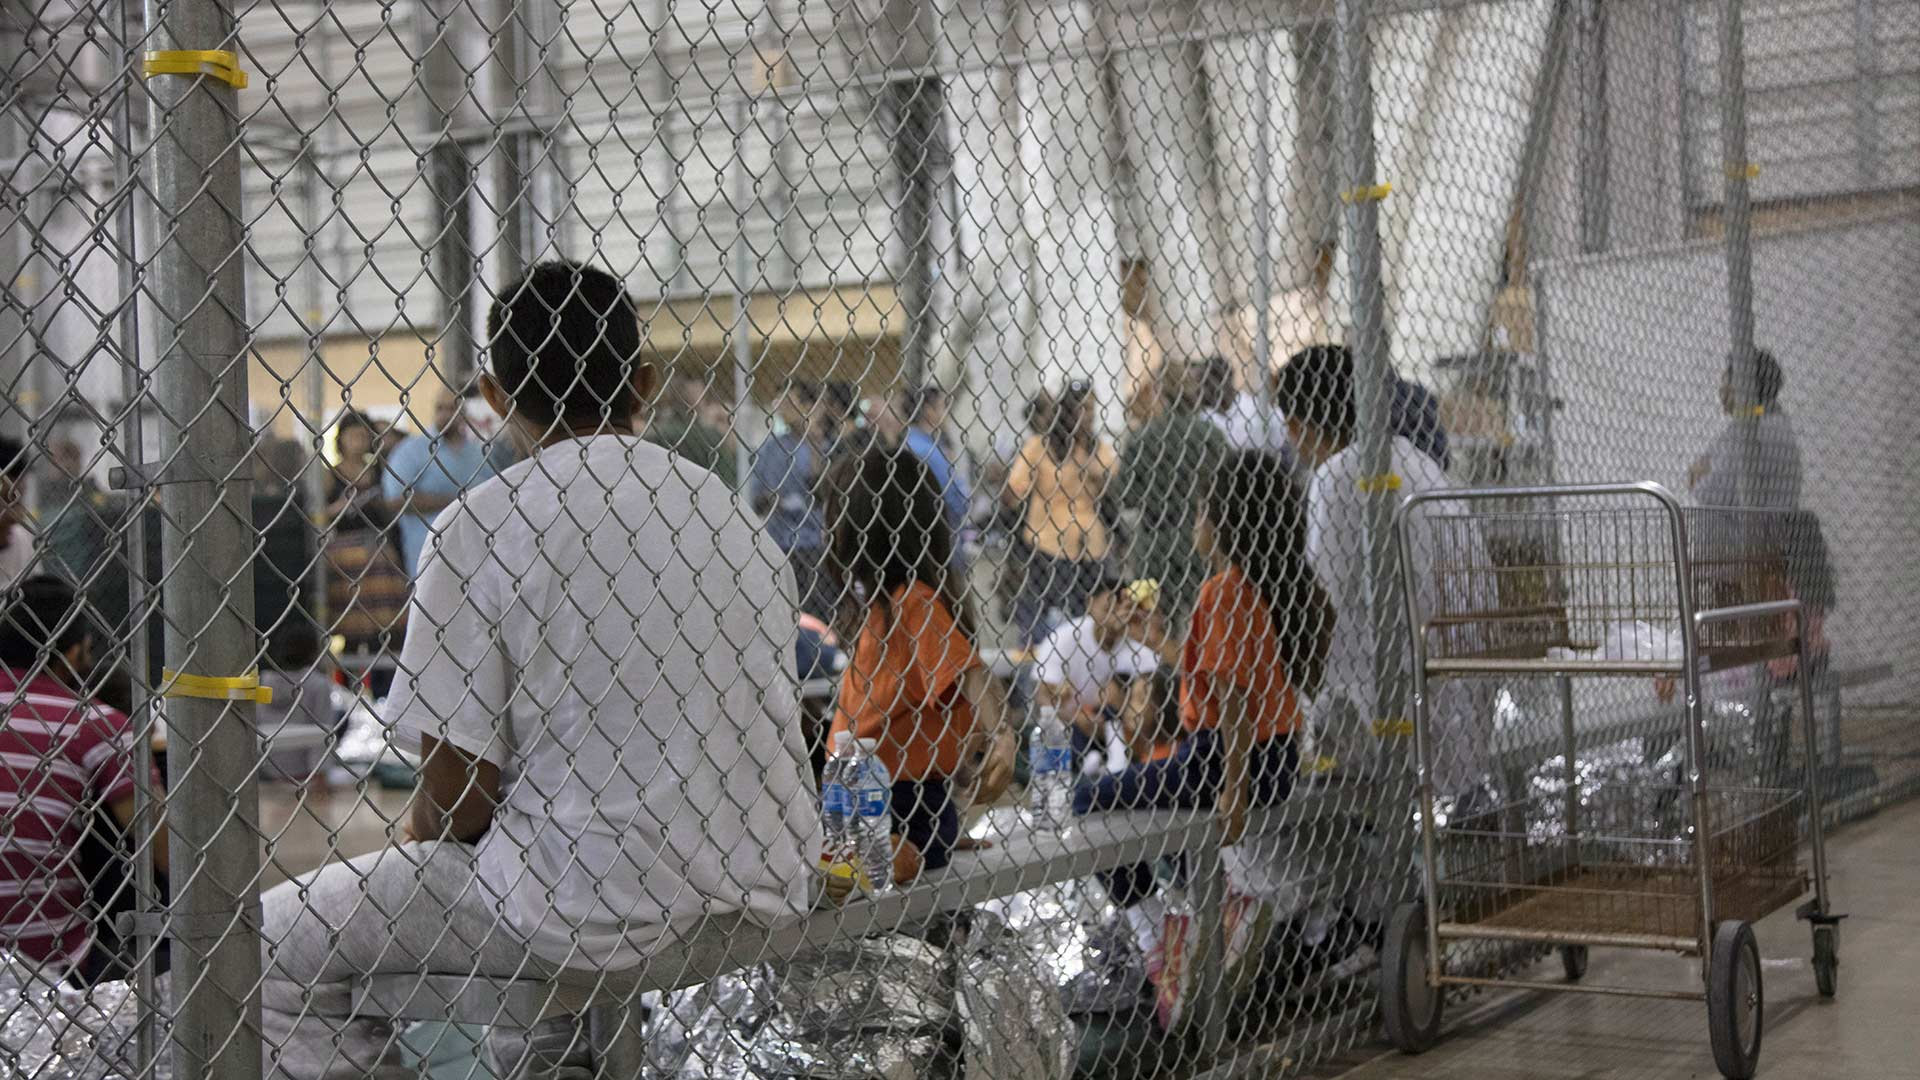 Adults and children at Border Patrol's Central Processing Center in McAllen, Texas, June 17, 2018.